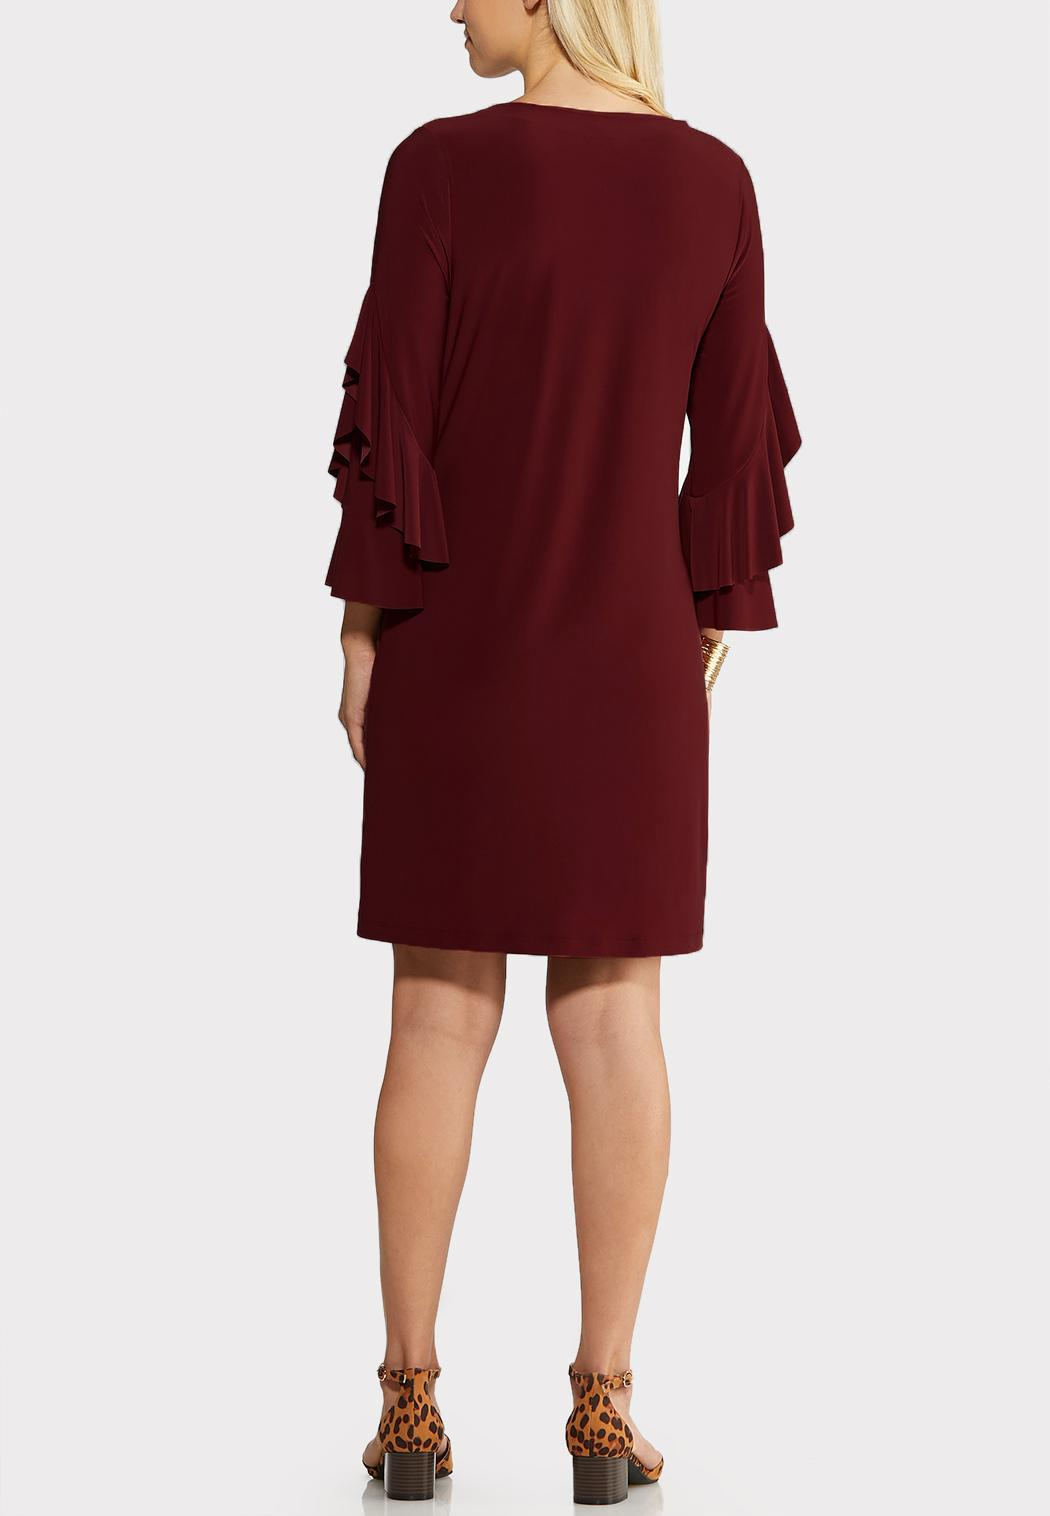 Flounce Sleeve Sheath Dress (Item #43989475)